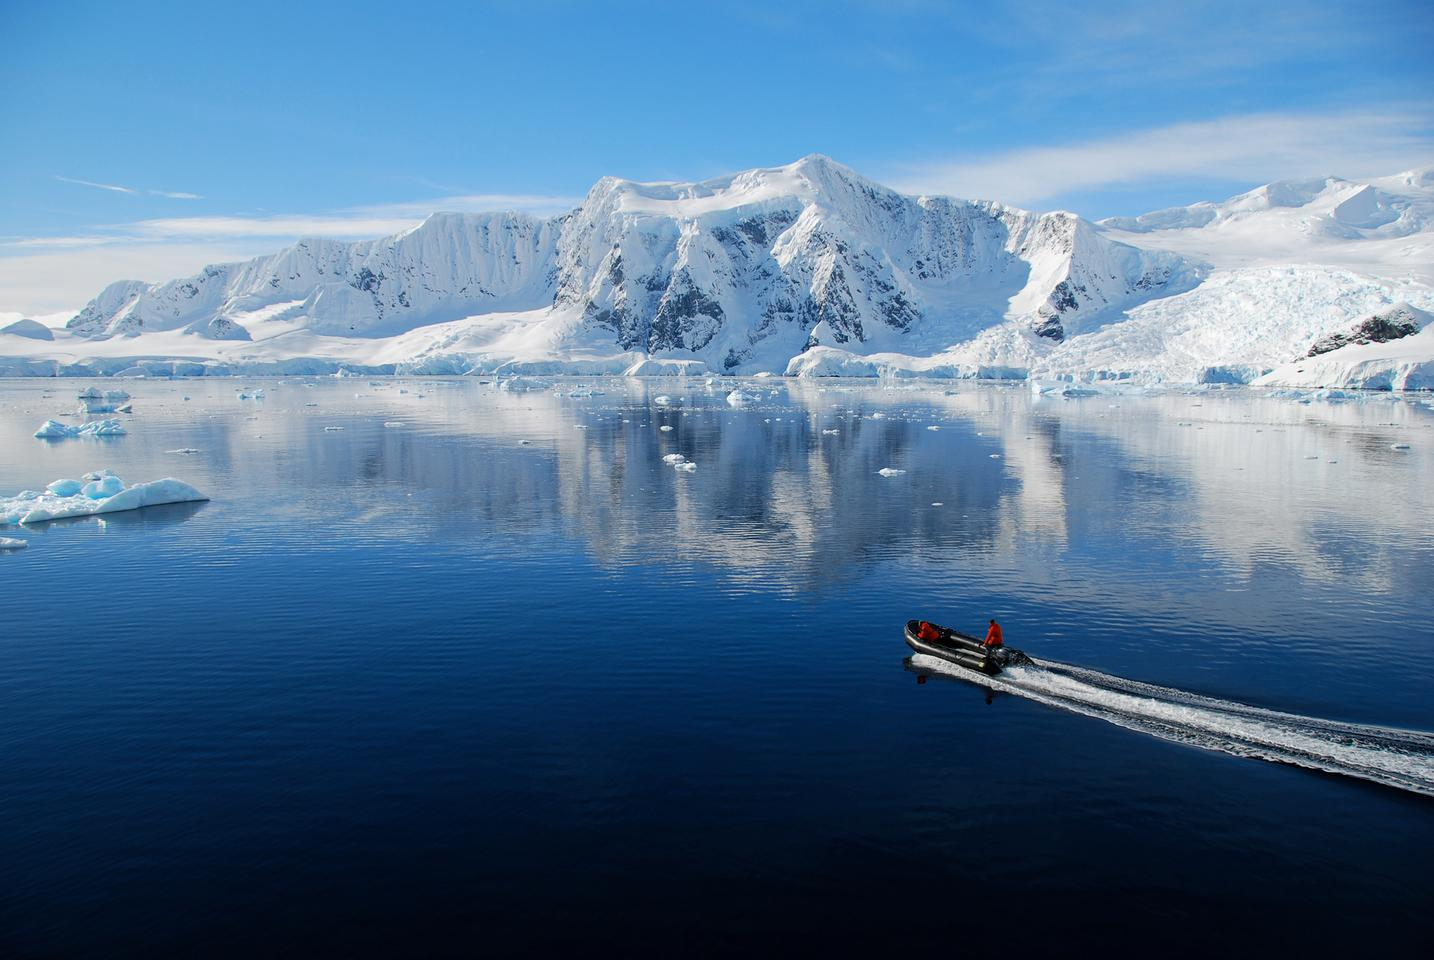 Researchers have discovered microplastic particles in Antarctic sea ice for the first time